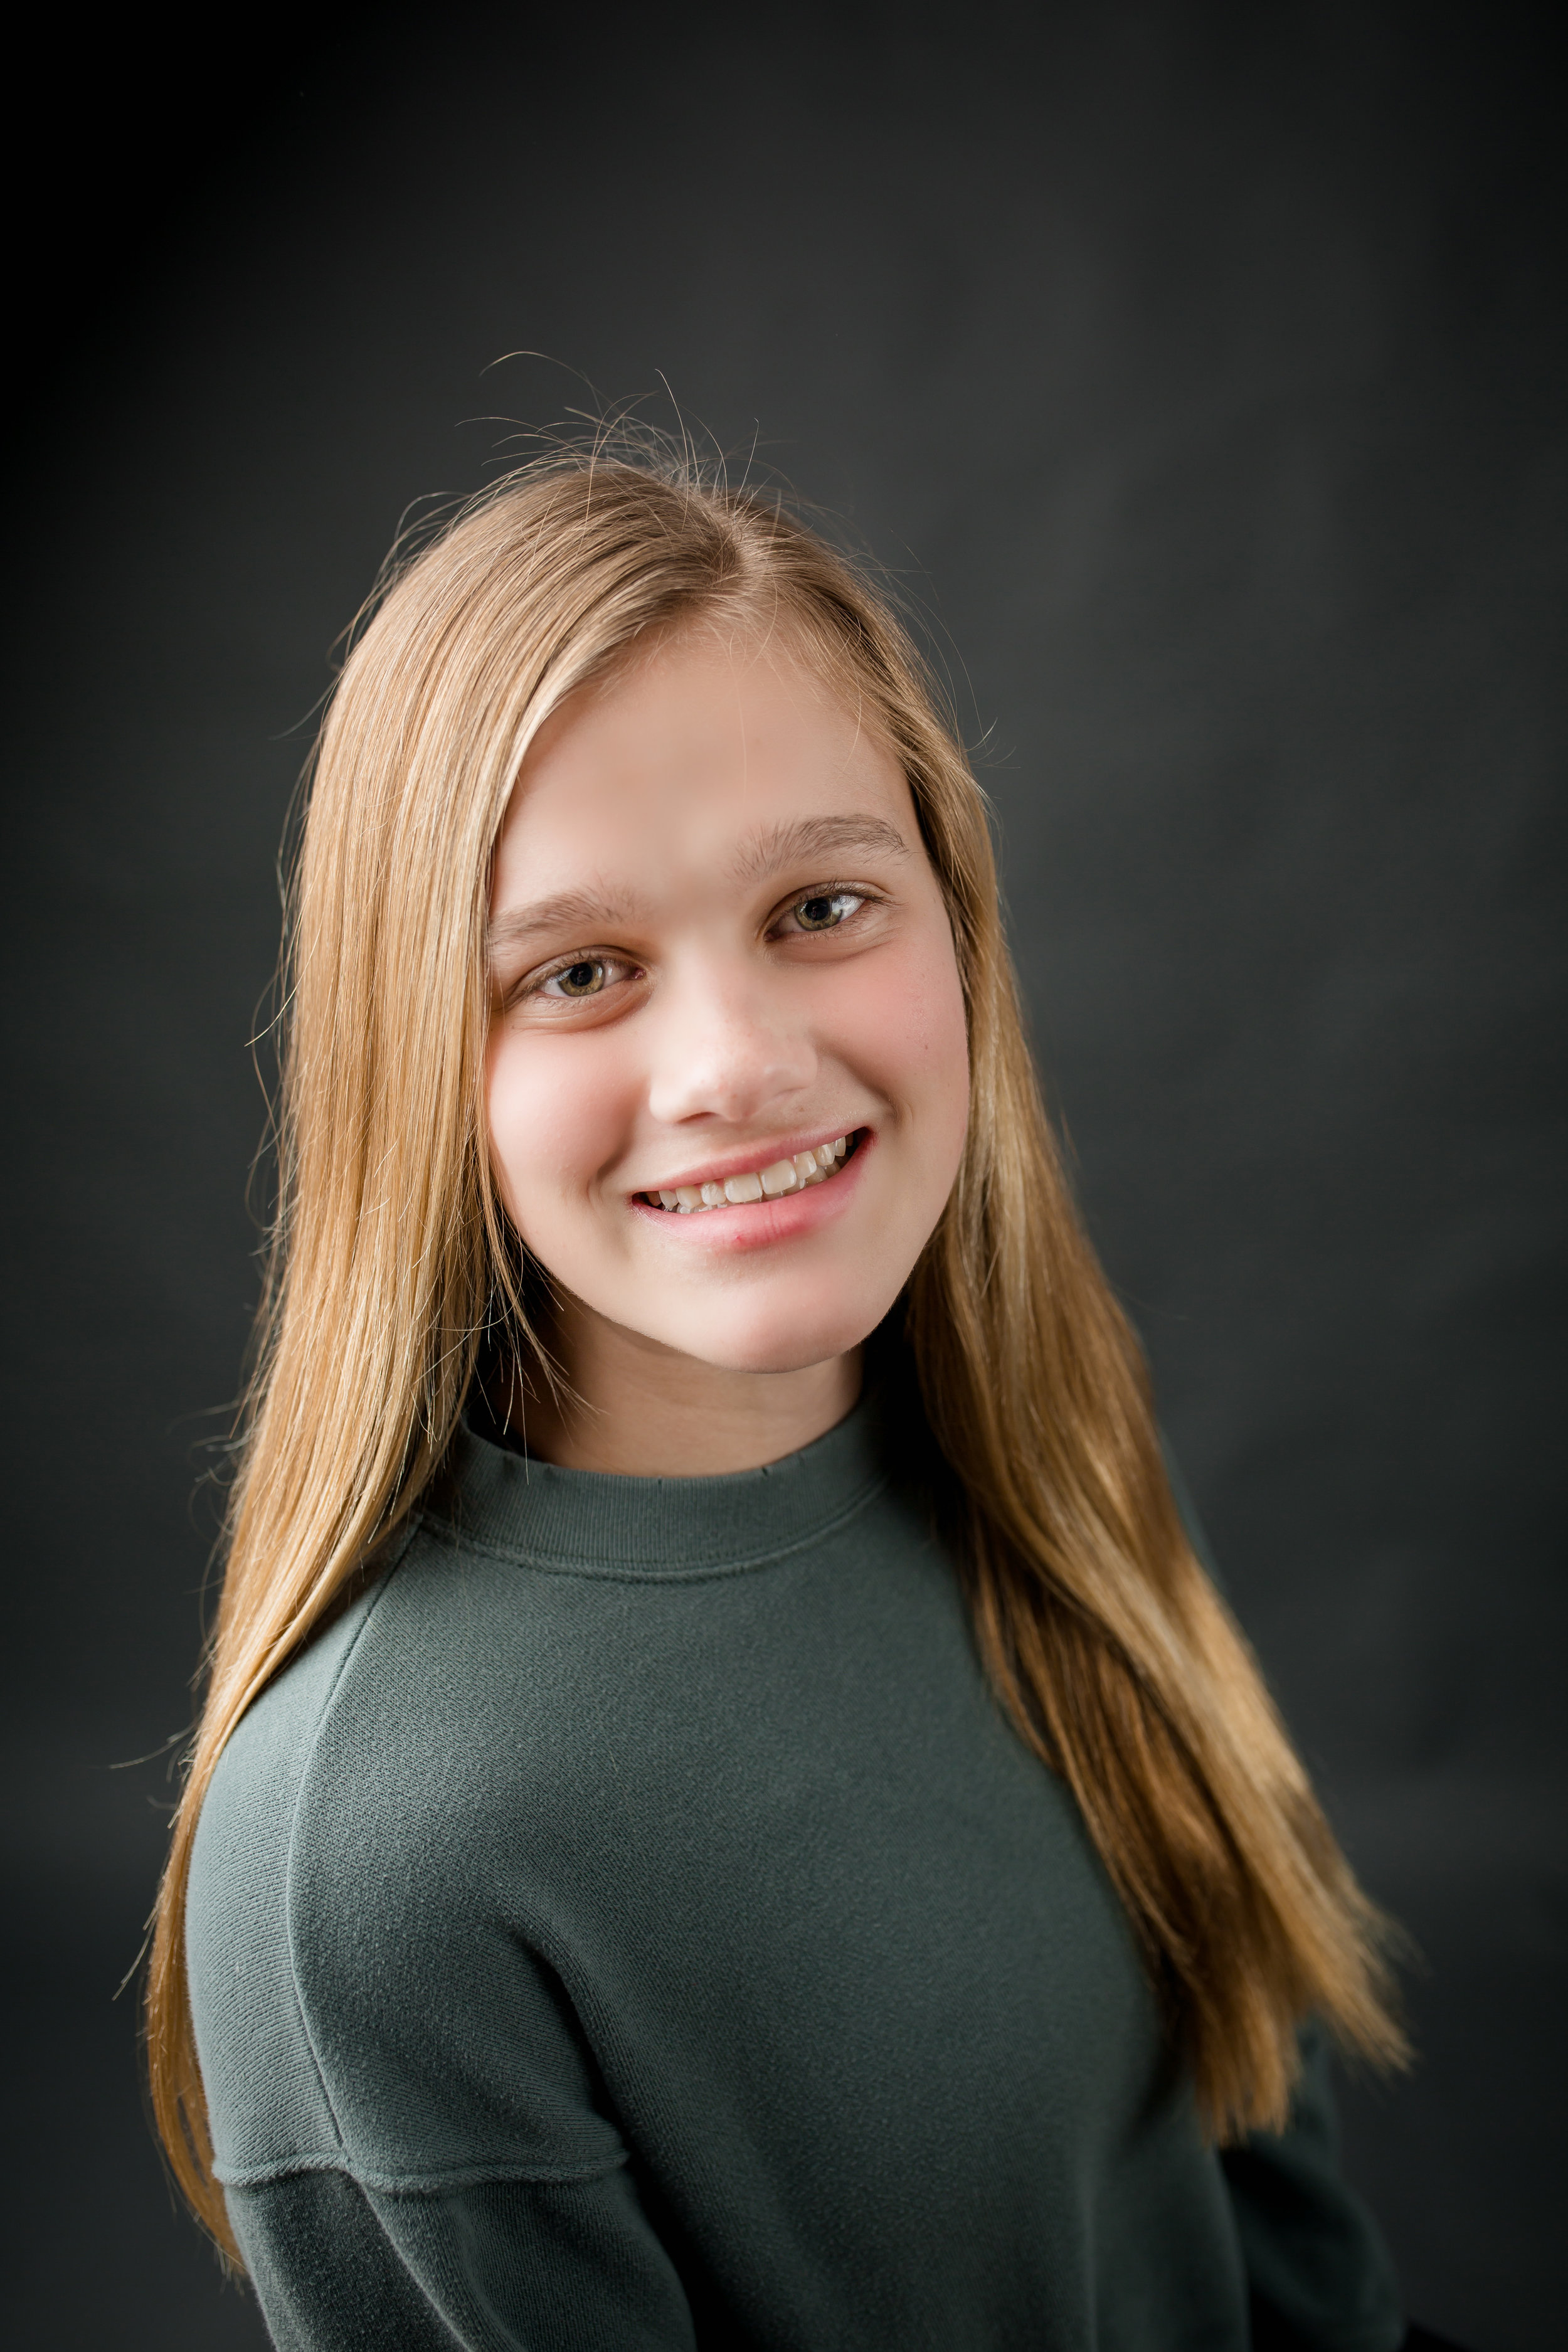 Thanks to Groesch, Longos & Middleton  - head shot will be online 7 days after your session